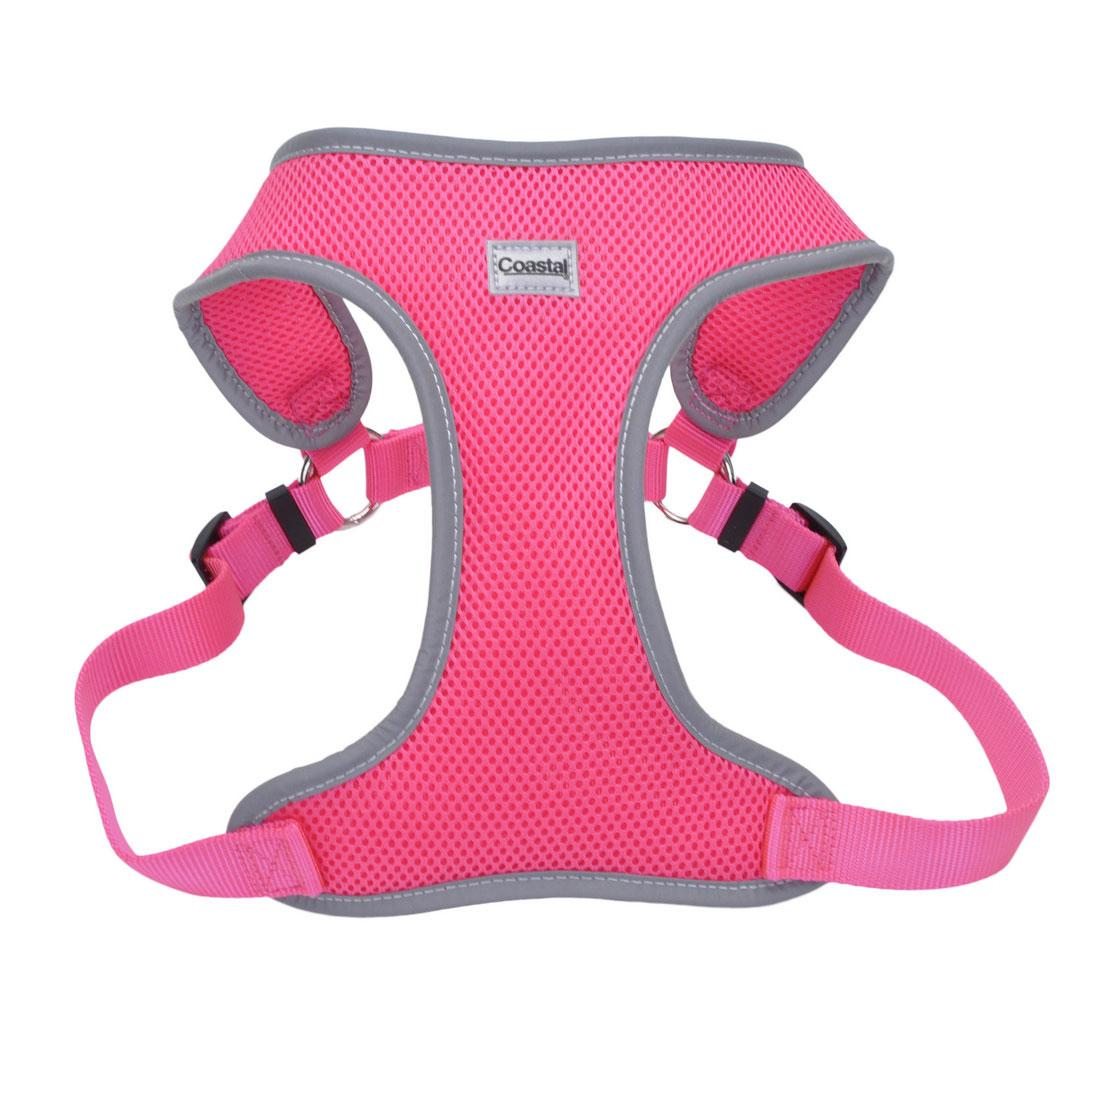 Coastal Comfort Soft Reflective Wrap Adjustable Dog Harness, Neon Pink, 3/4-in x 20-29-in